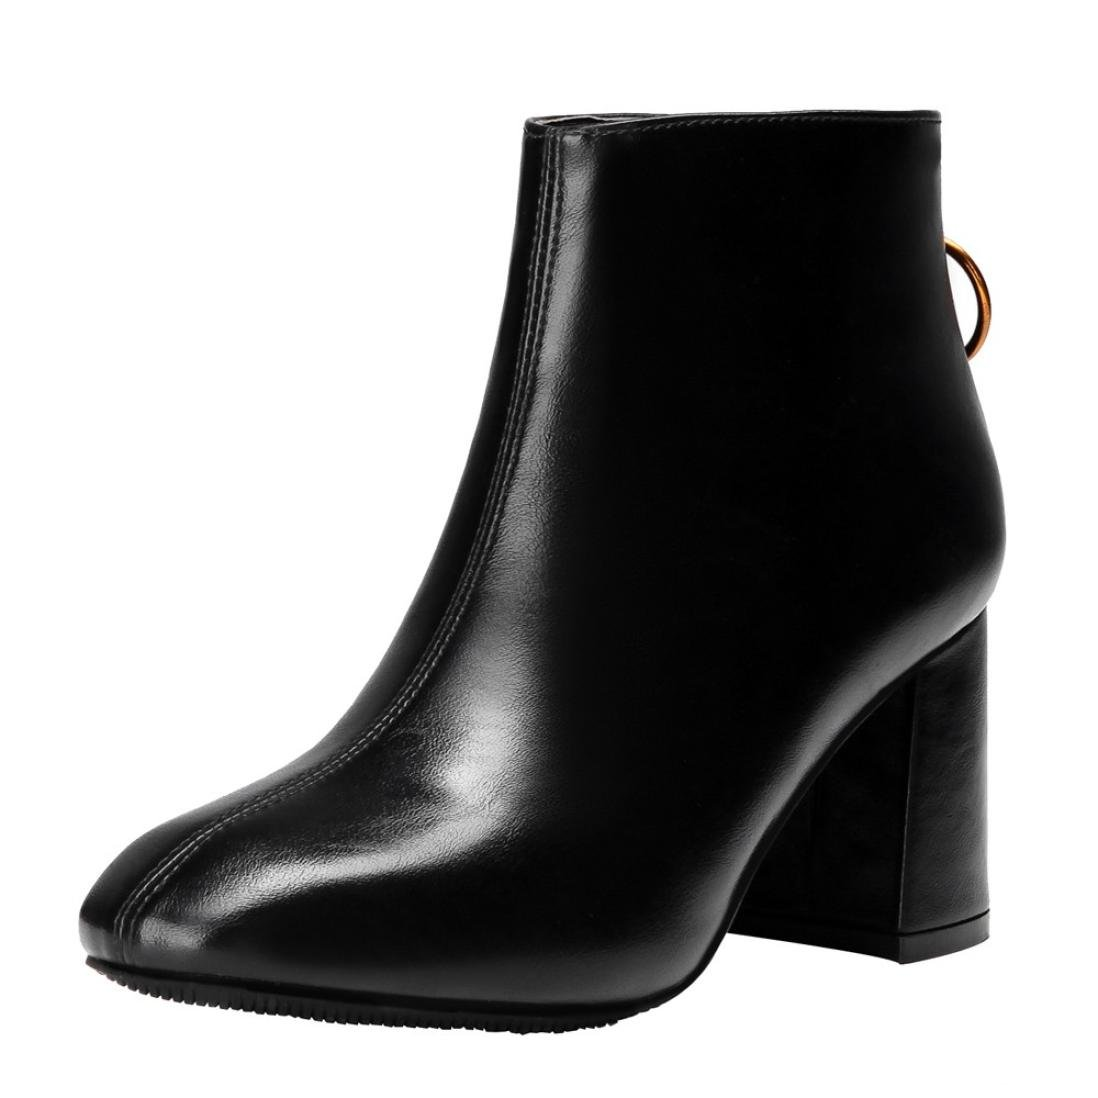 Womens Winter Boots - Chunky Heel Back Zipper Ankle Booties - Ladies Faux Lether Point Toe Snow Boots Shoes (Black, 38/US:7)